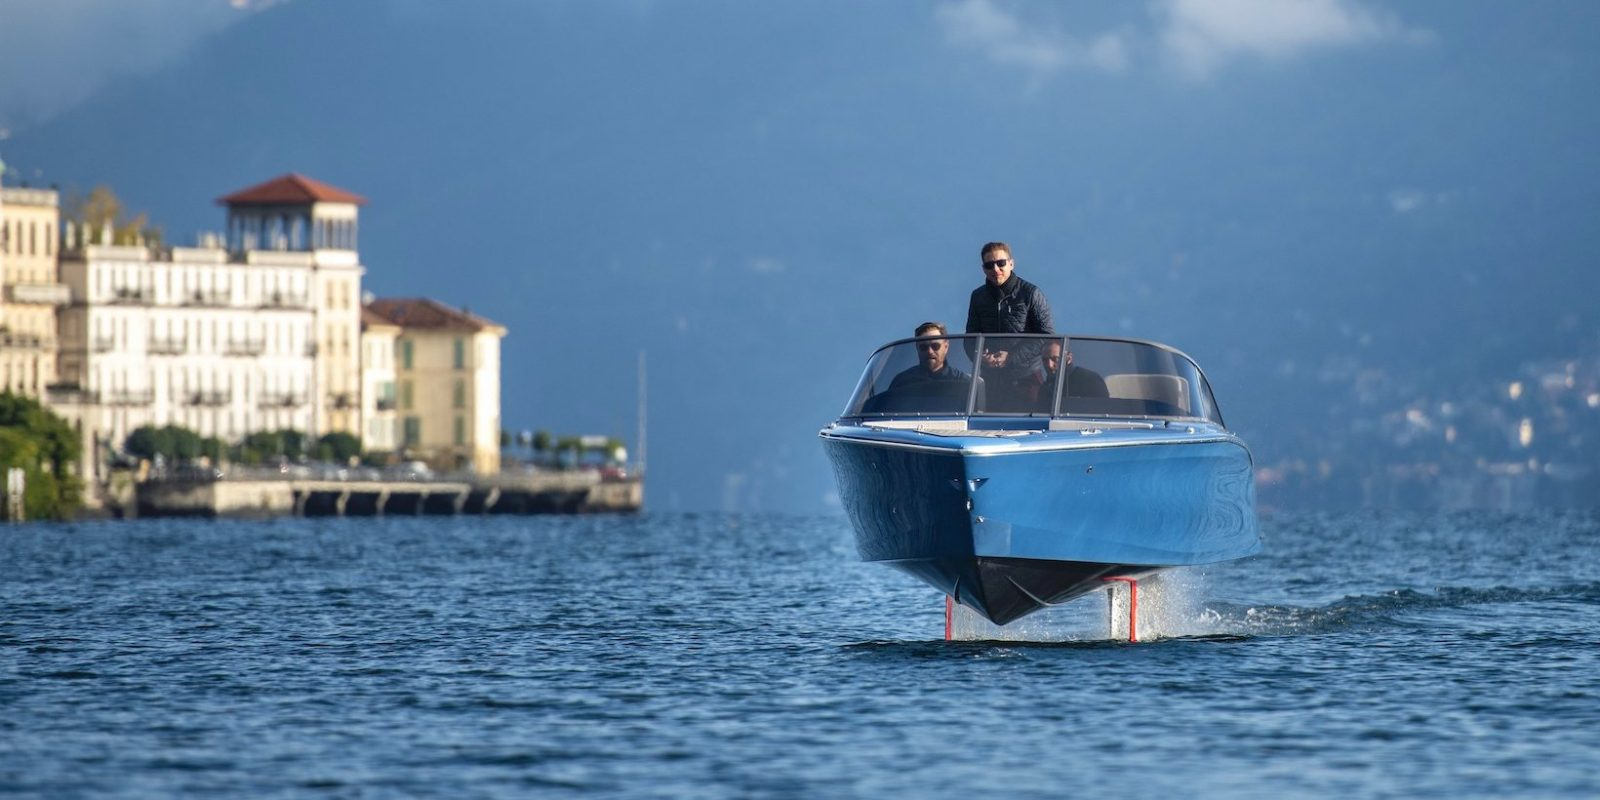 Candela Electric Hydrofoil Boat Watch The First E Foiling Boat In Action